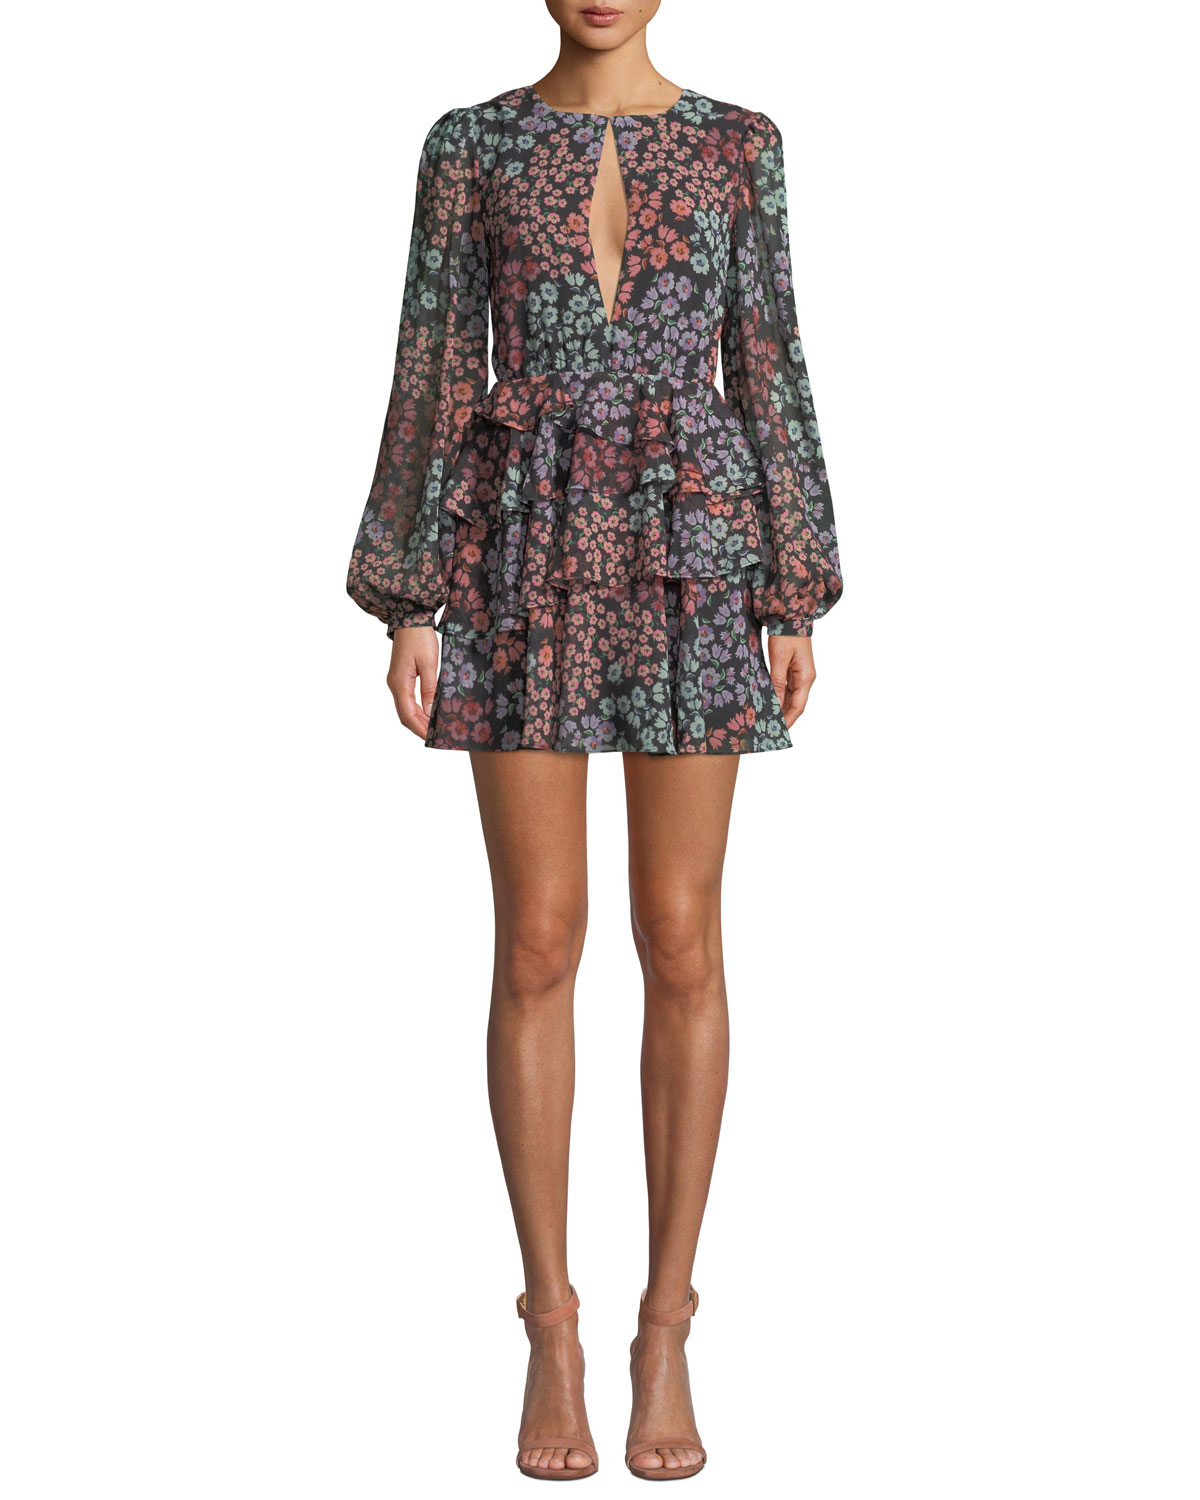 LOVERS+FRIENDS Carter Tiered Floral Long-Sleeve Short Dress in Multi